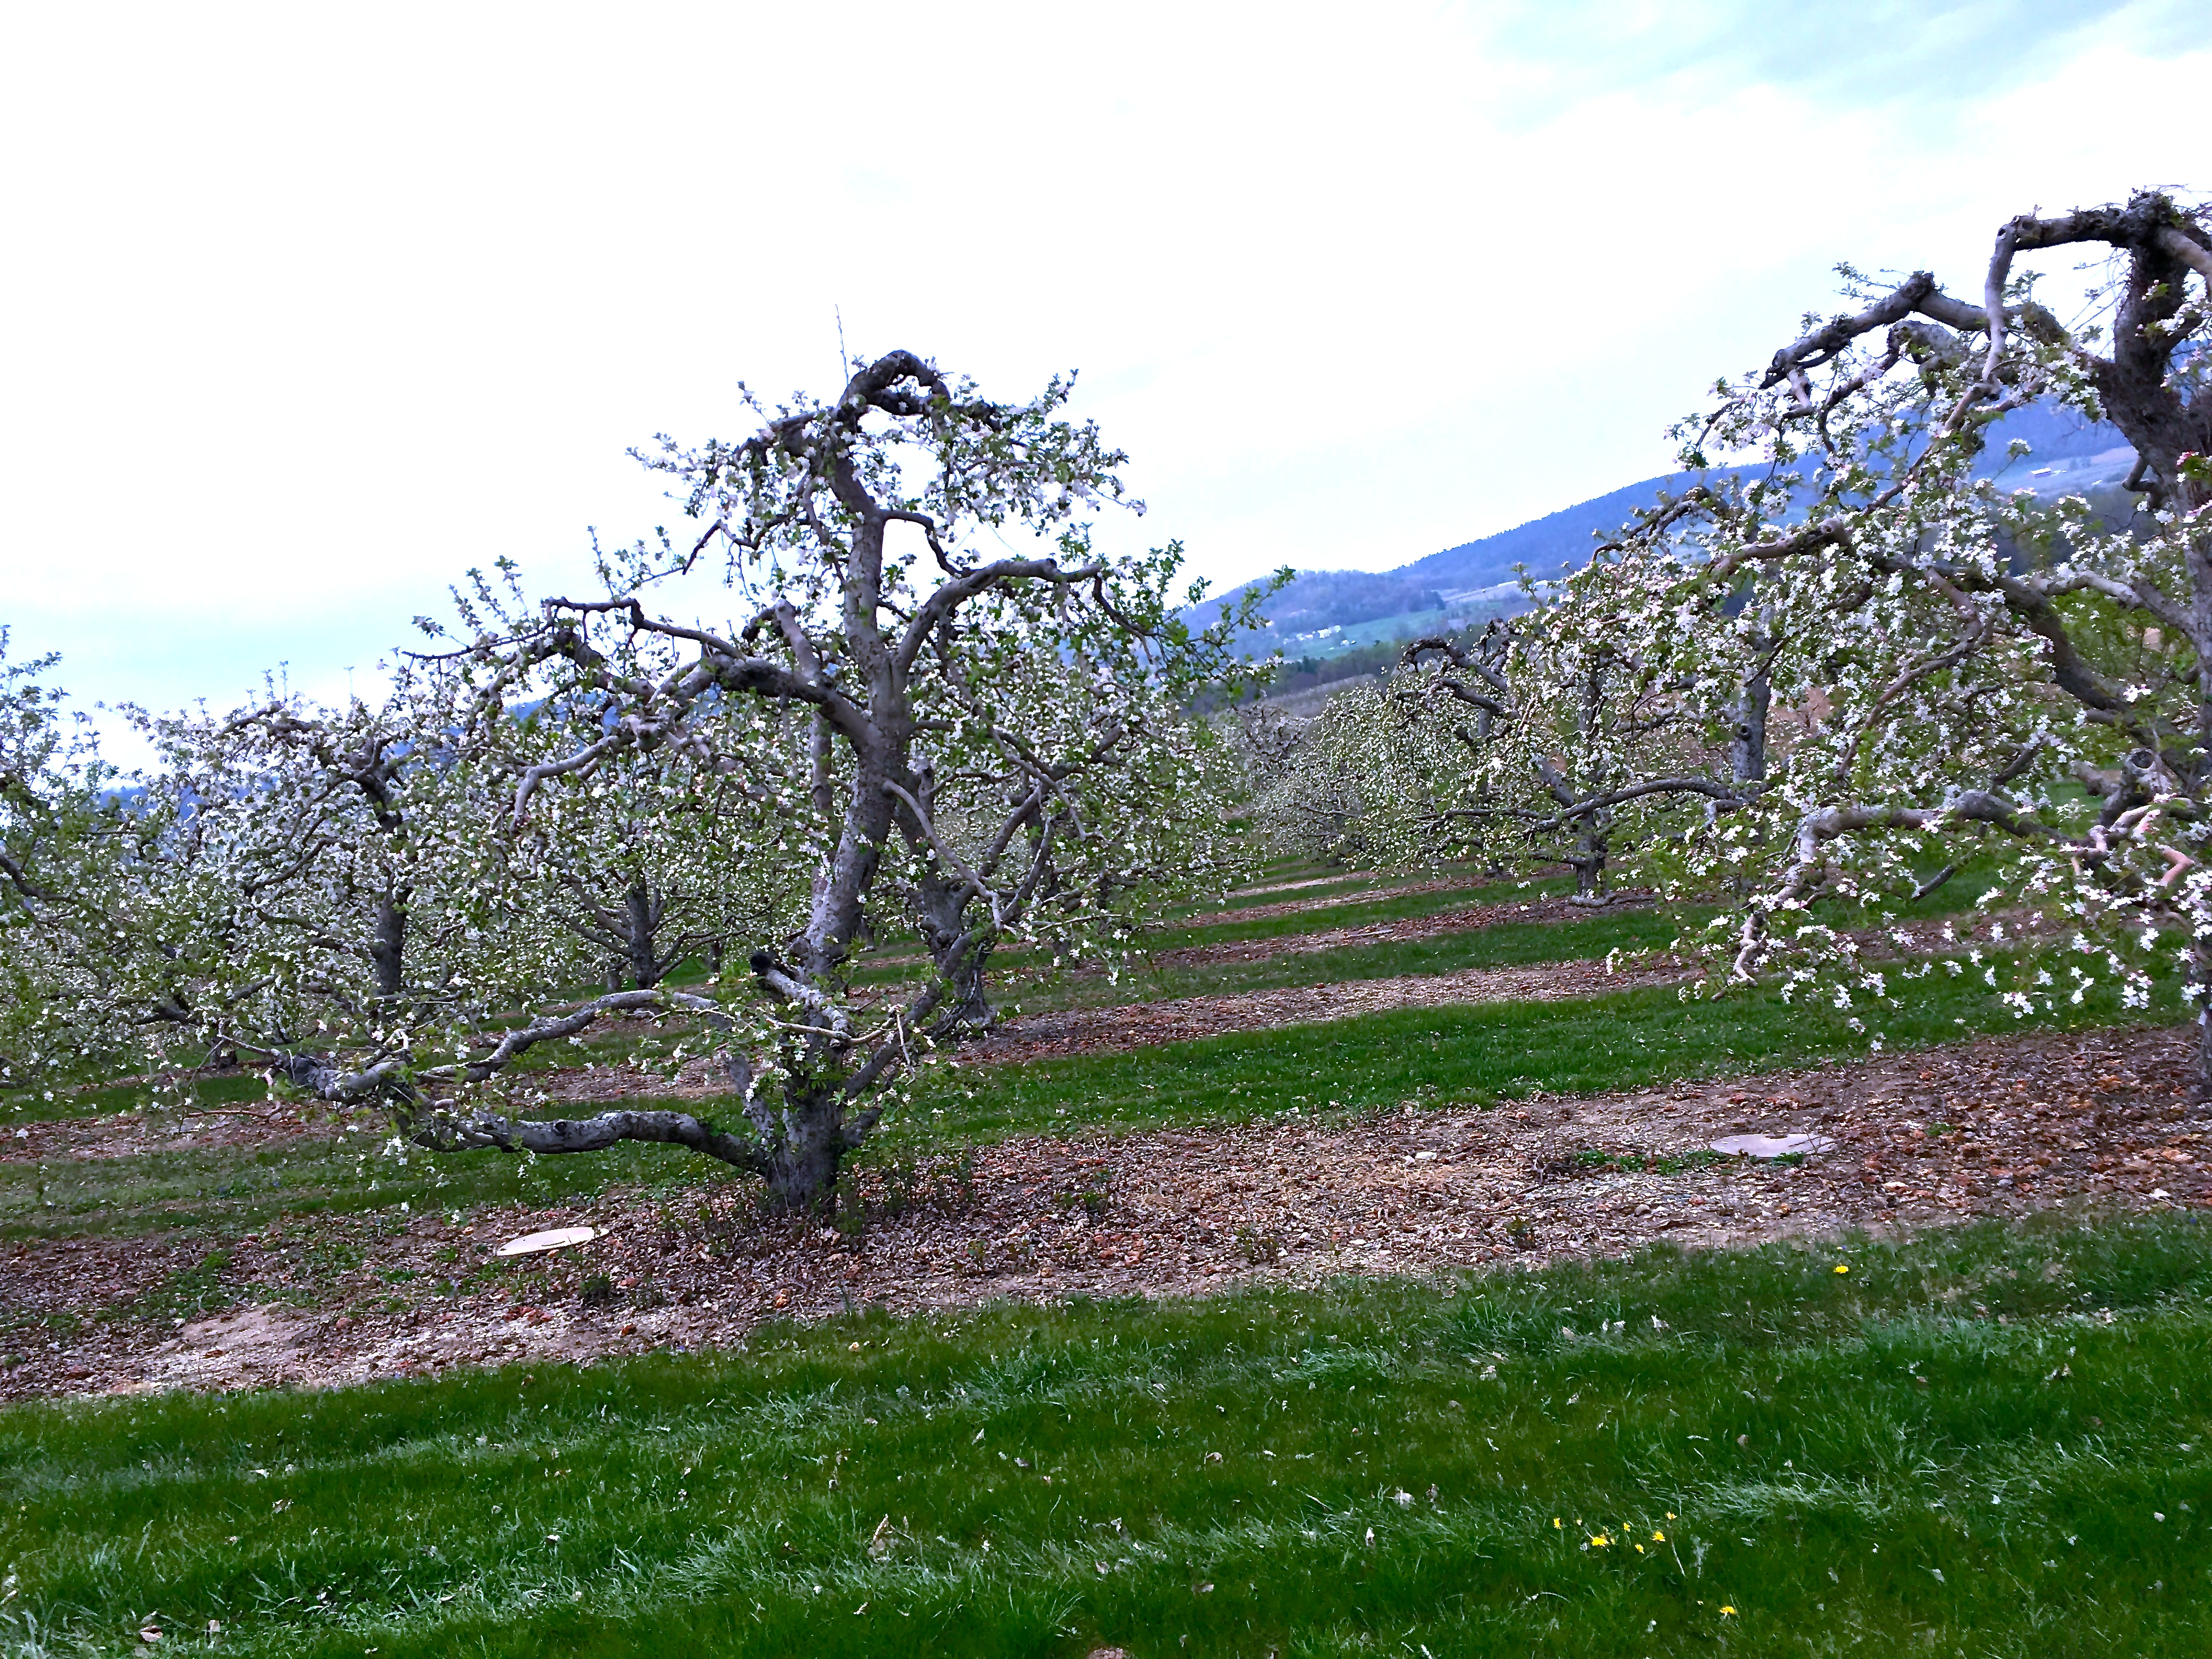 Blooming apple trees in the Penn State research orchards in Biglerville, PA